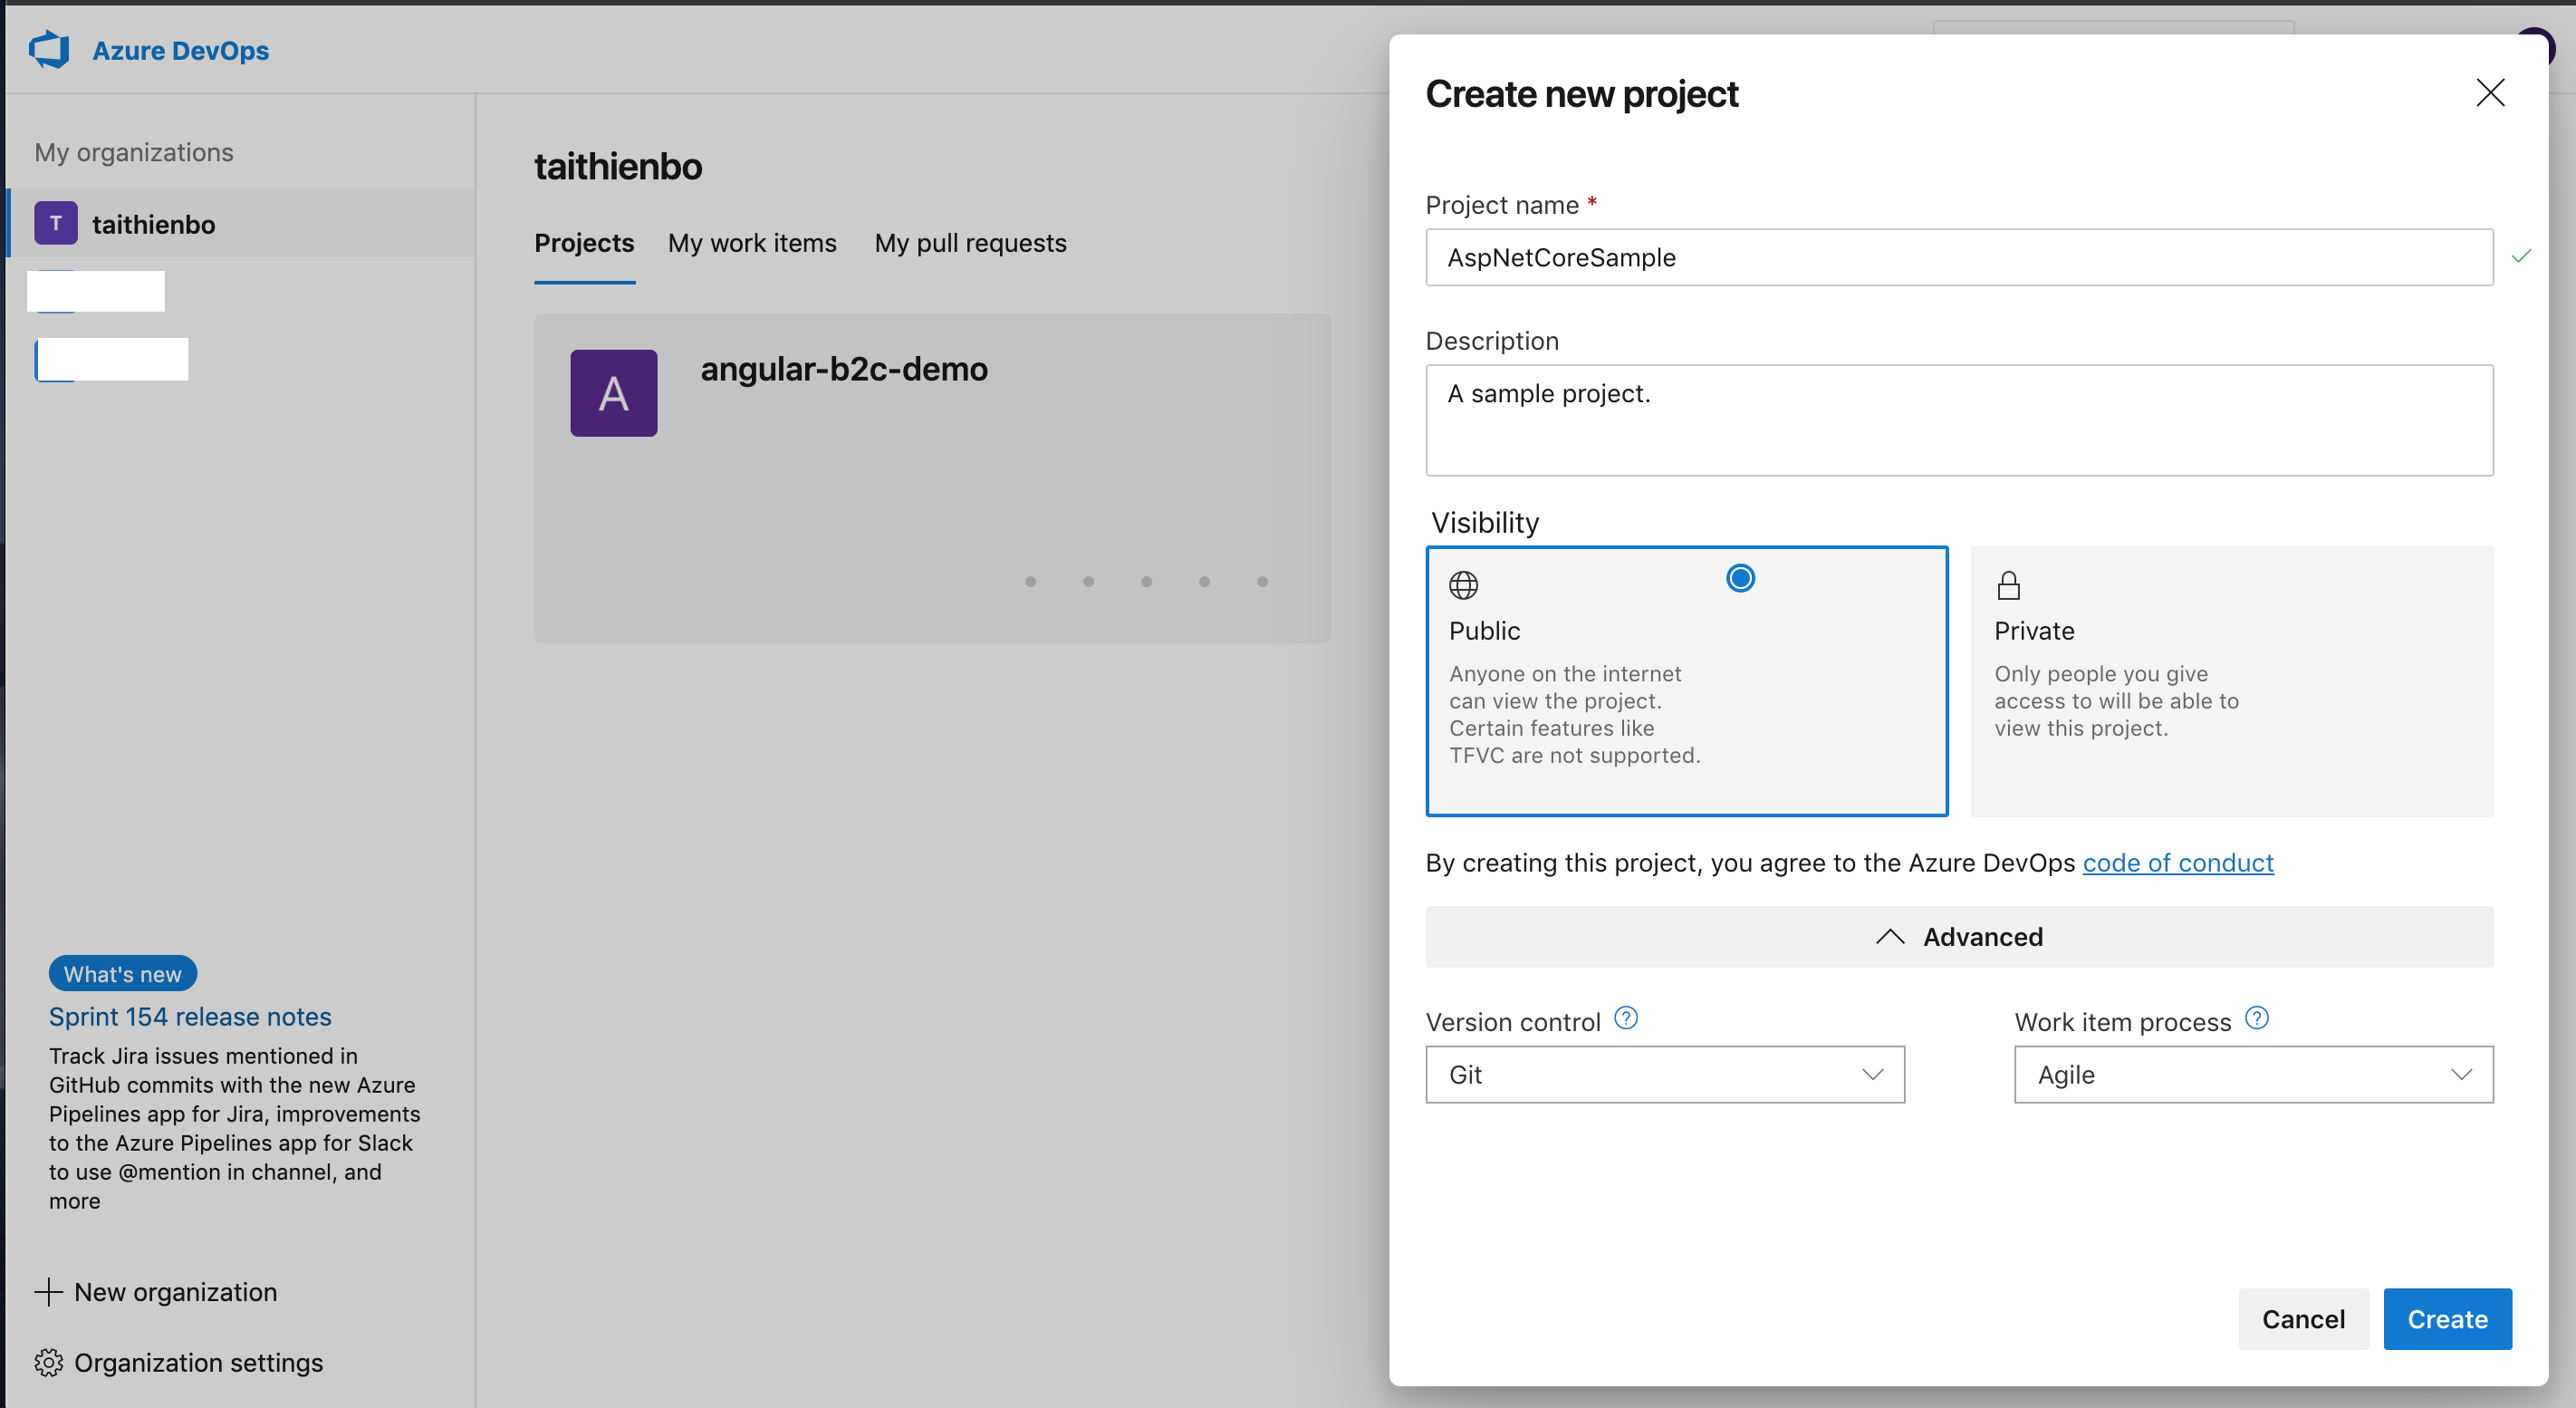 Build and deploy an ASP NET core app running on IIS using